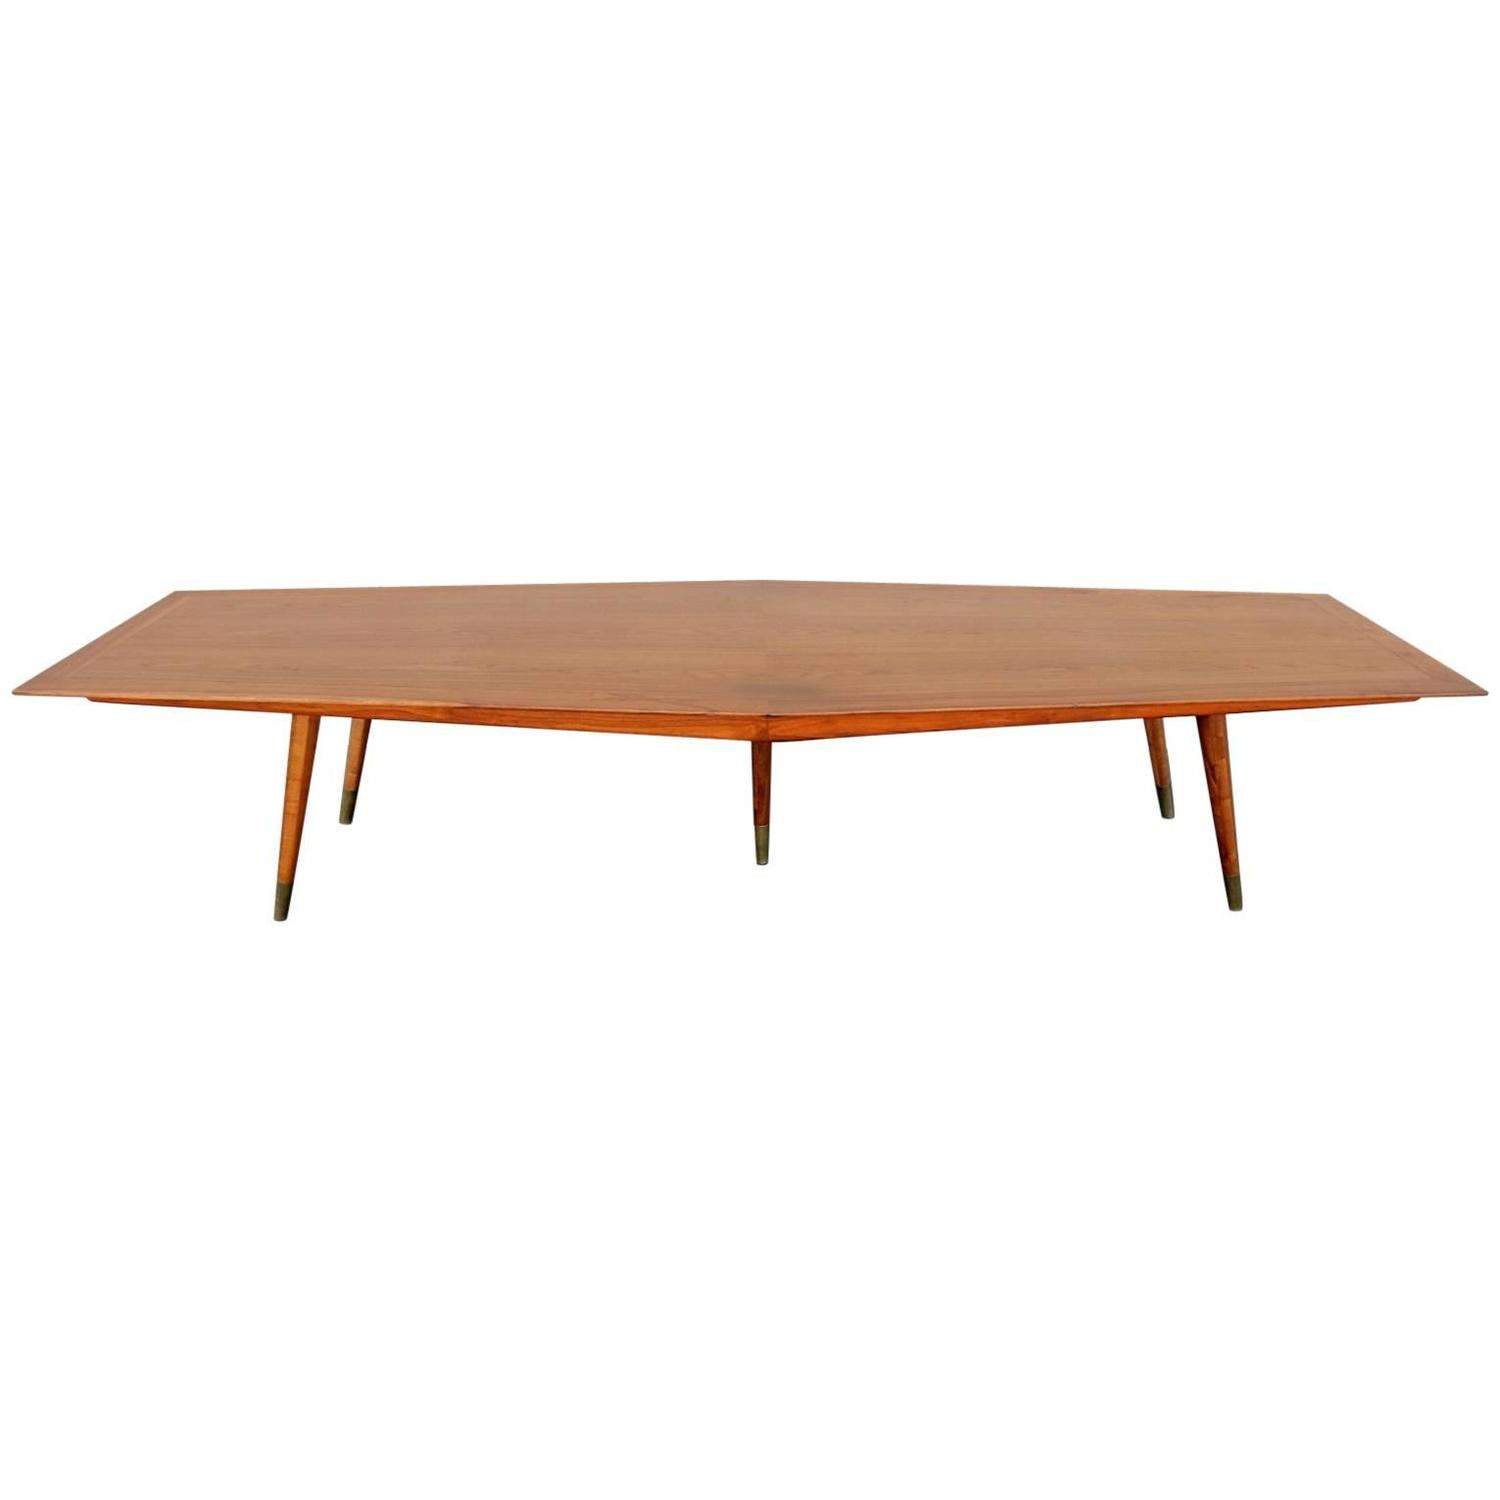 Mid Century Modern 12 Foot Conference Table by Stow Davis circa